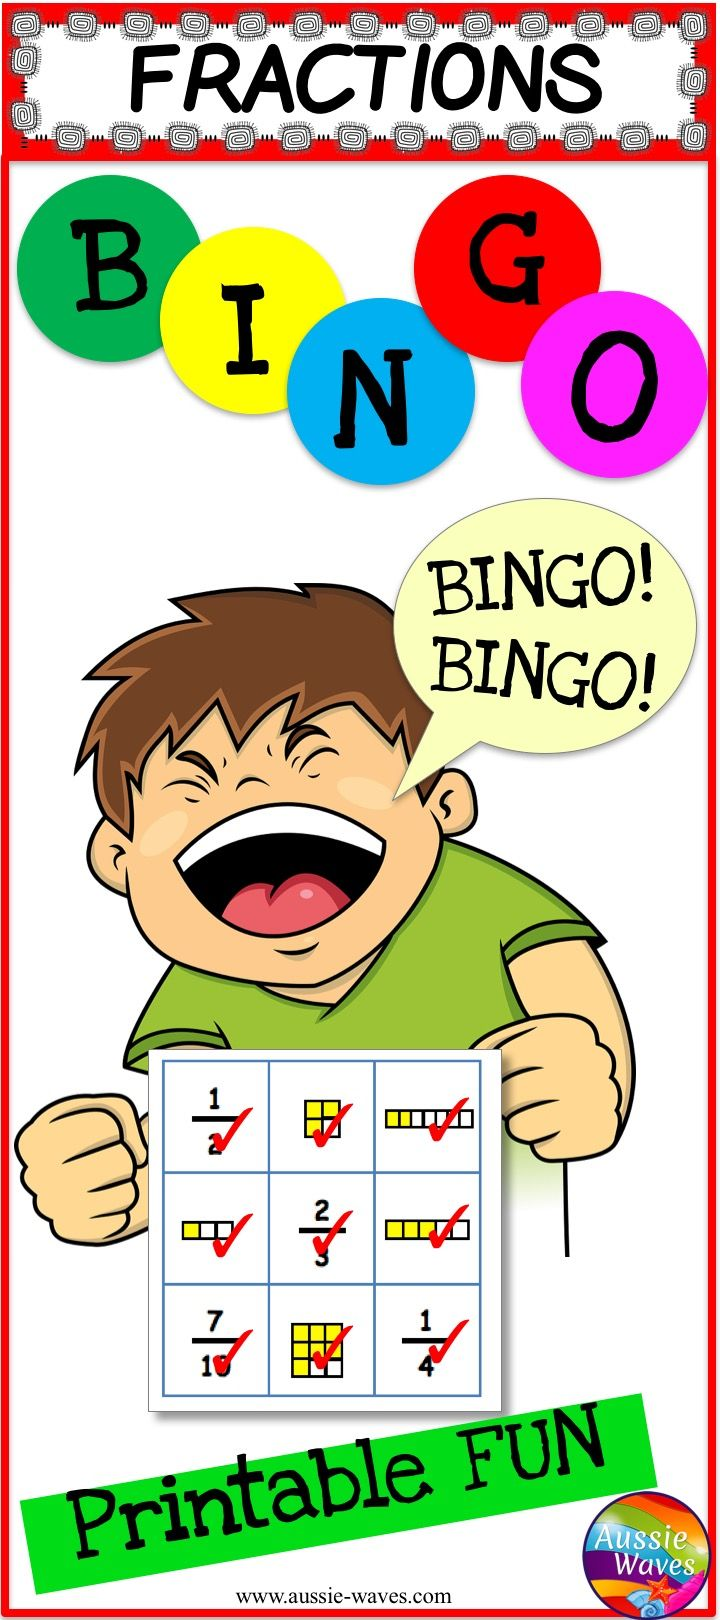 Printable Bingo Cards for kids to learn about fractions. Play, learn and have fun!